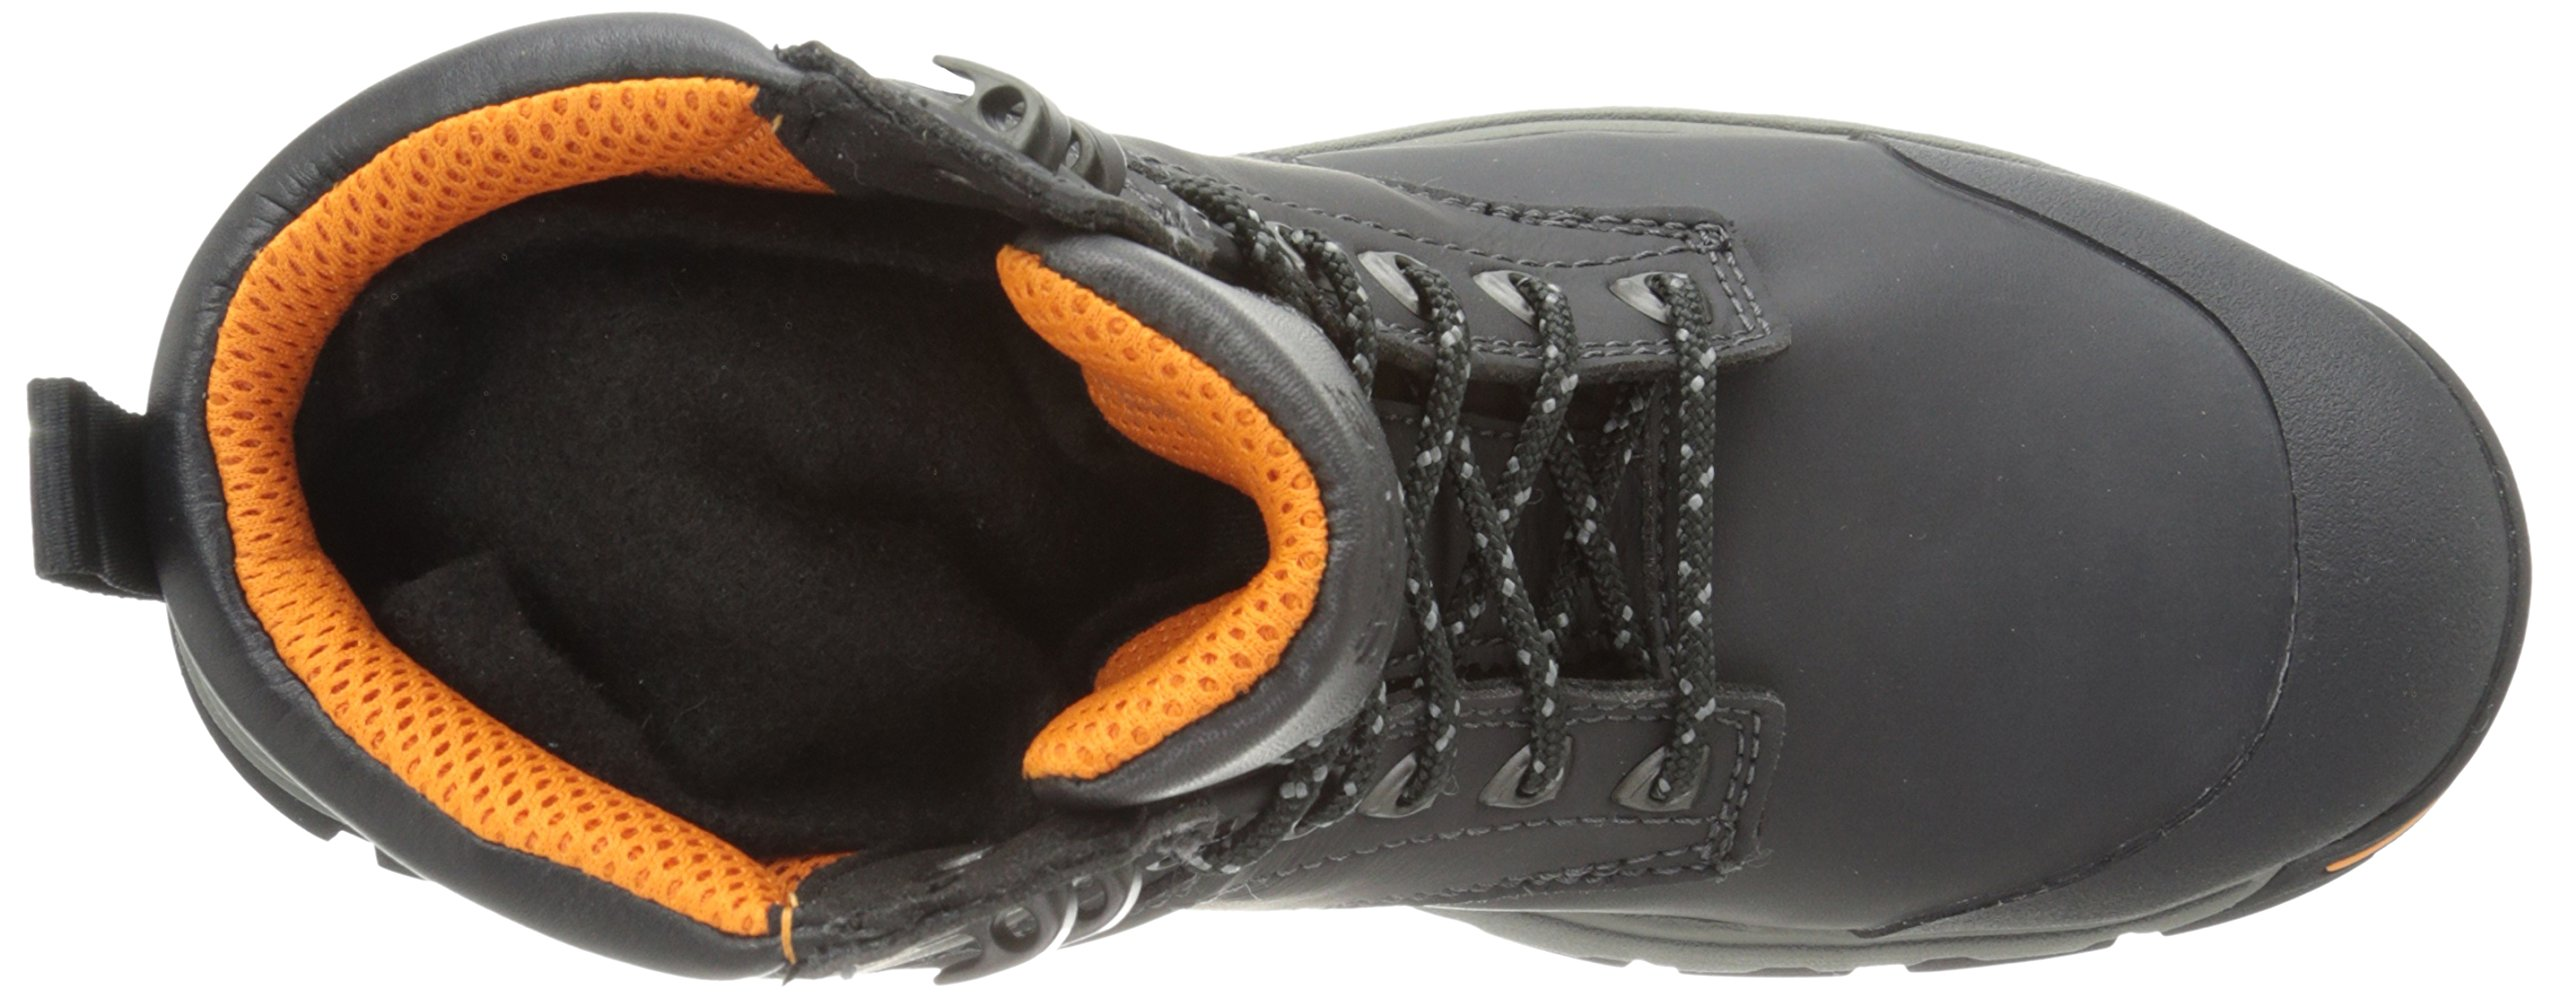 Timberland PRO Men's 6 Inch Stockdale Grip Max Alloy Toe Work and Hunt Boot, Black Microfiber, 5.5 M US by Timberland PRO (Image #8)